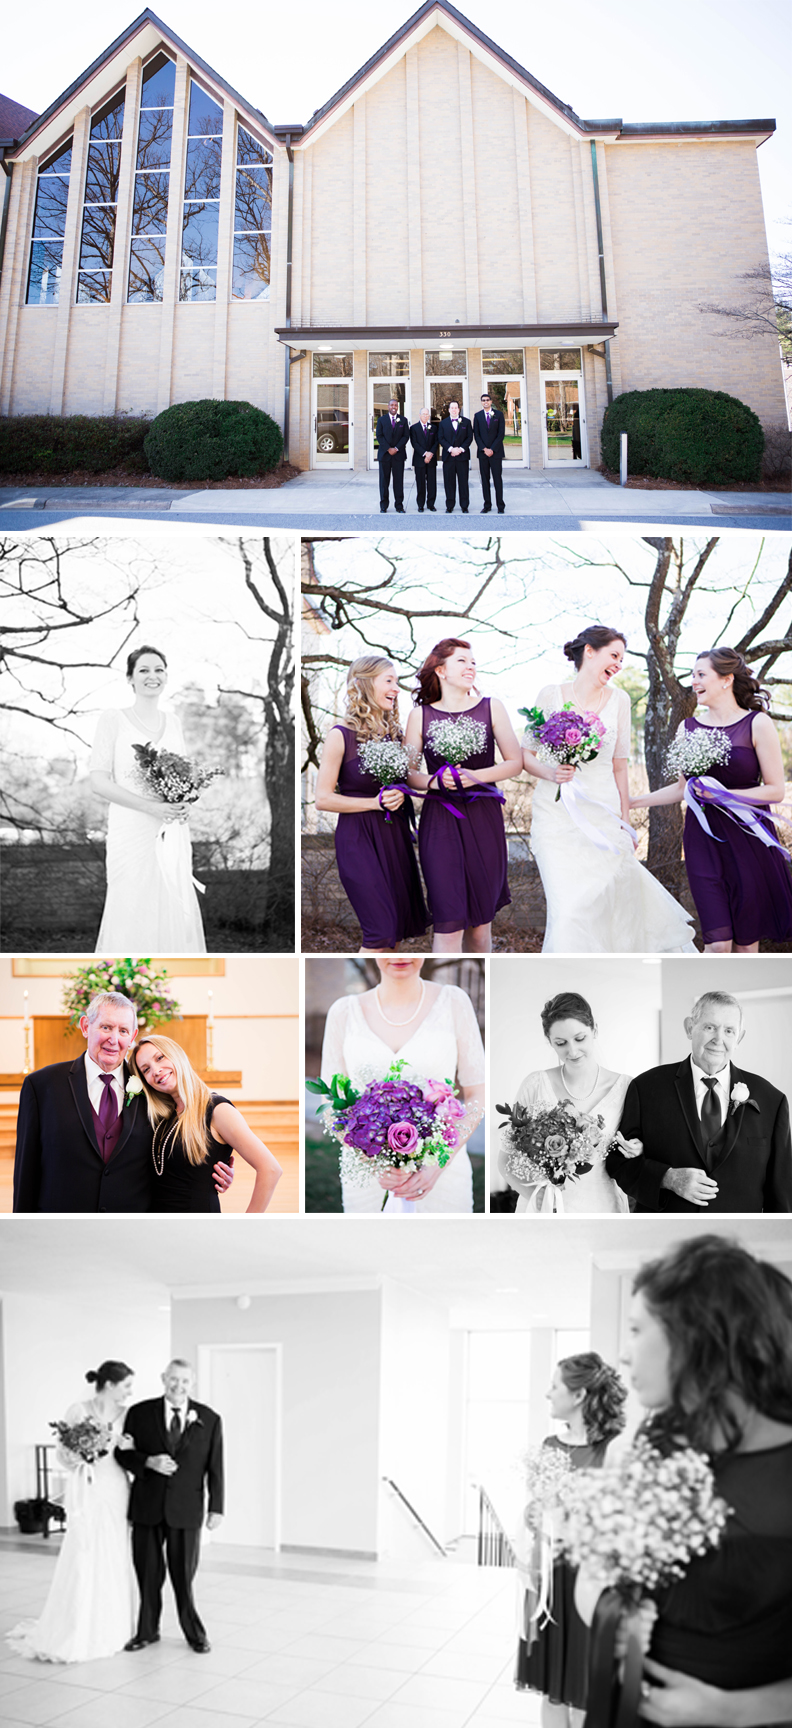 Emma_Arden_Photography_Wedding_Southern.jpg